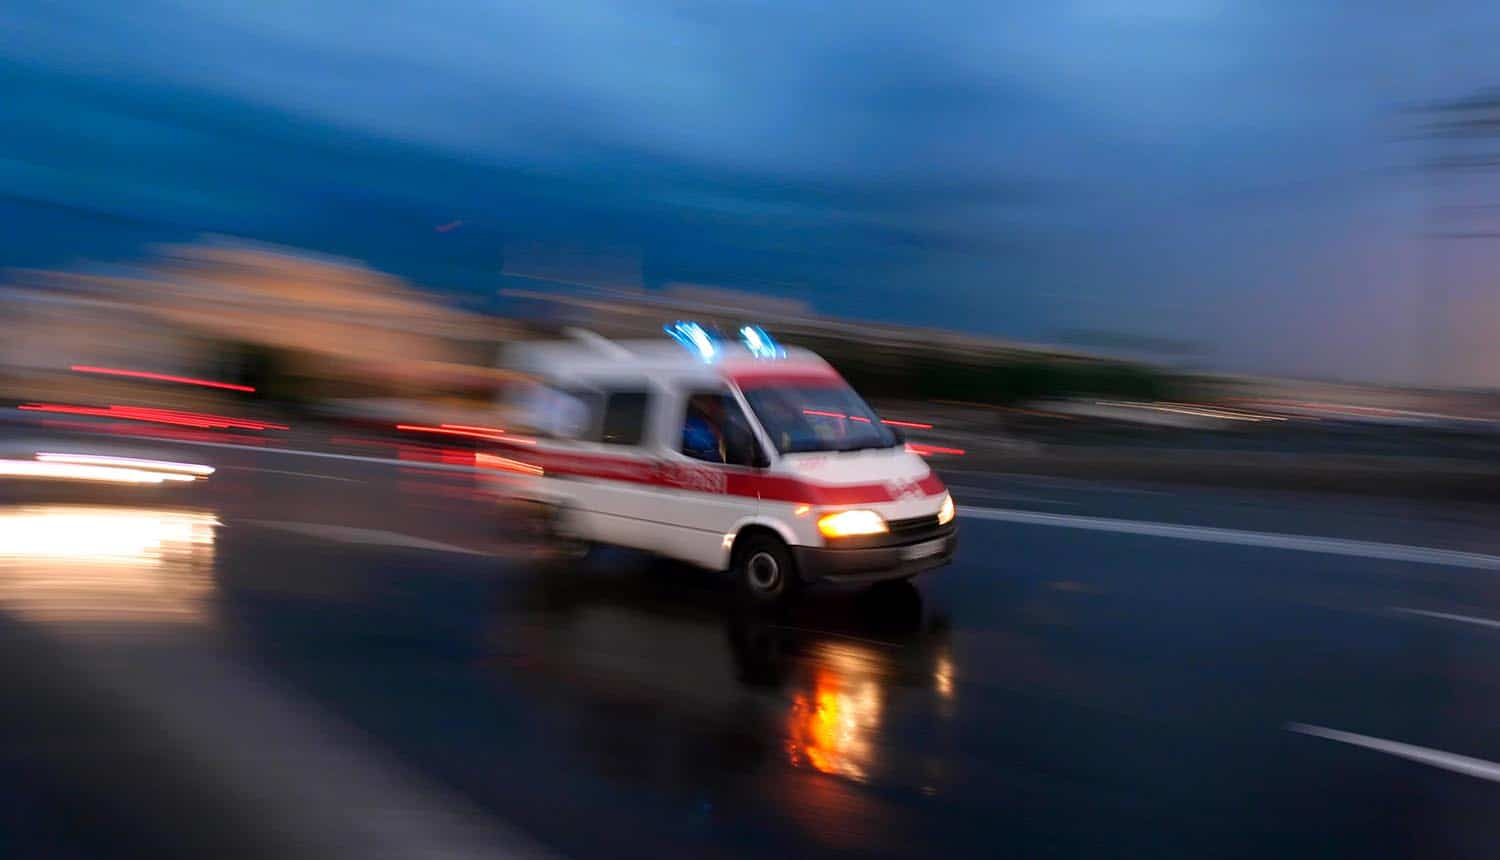 Ambulance car speeding blurred motion showing disruption of healthcare services due to Ryuk ransomware attack